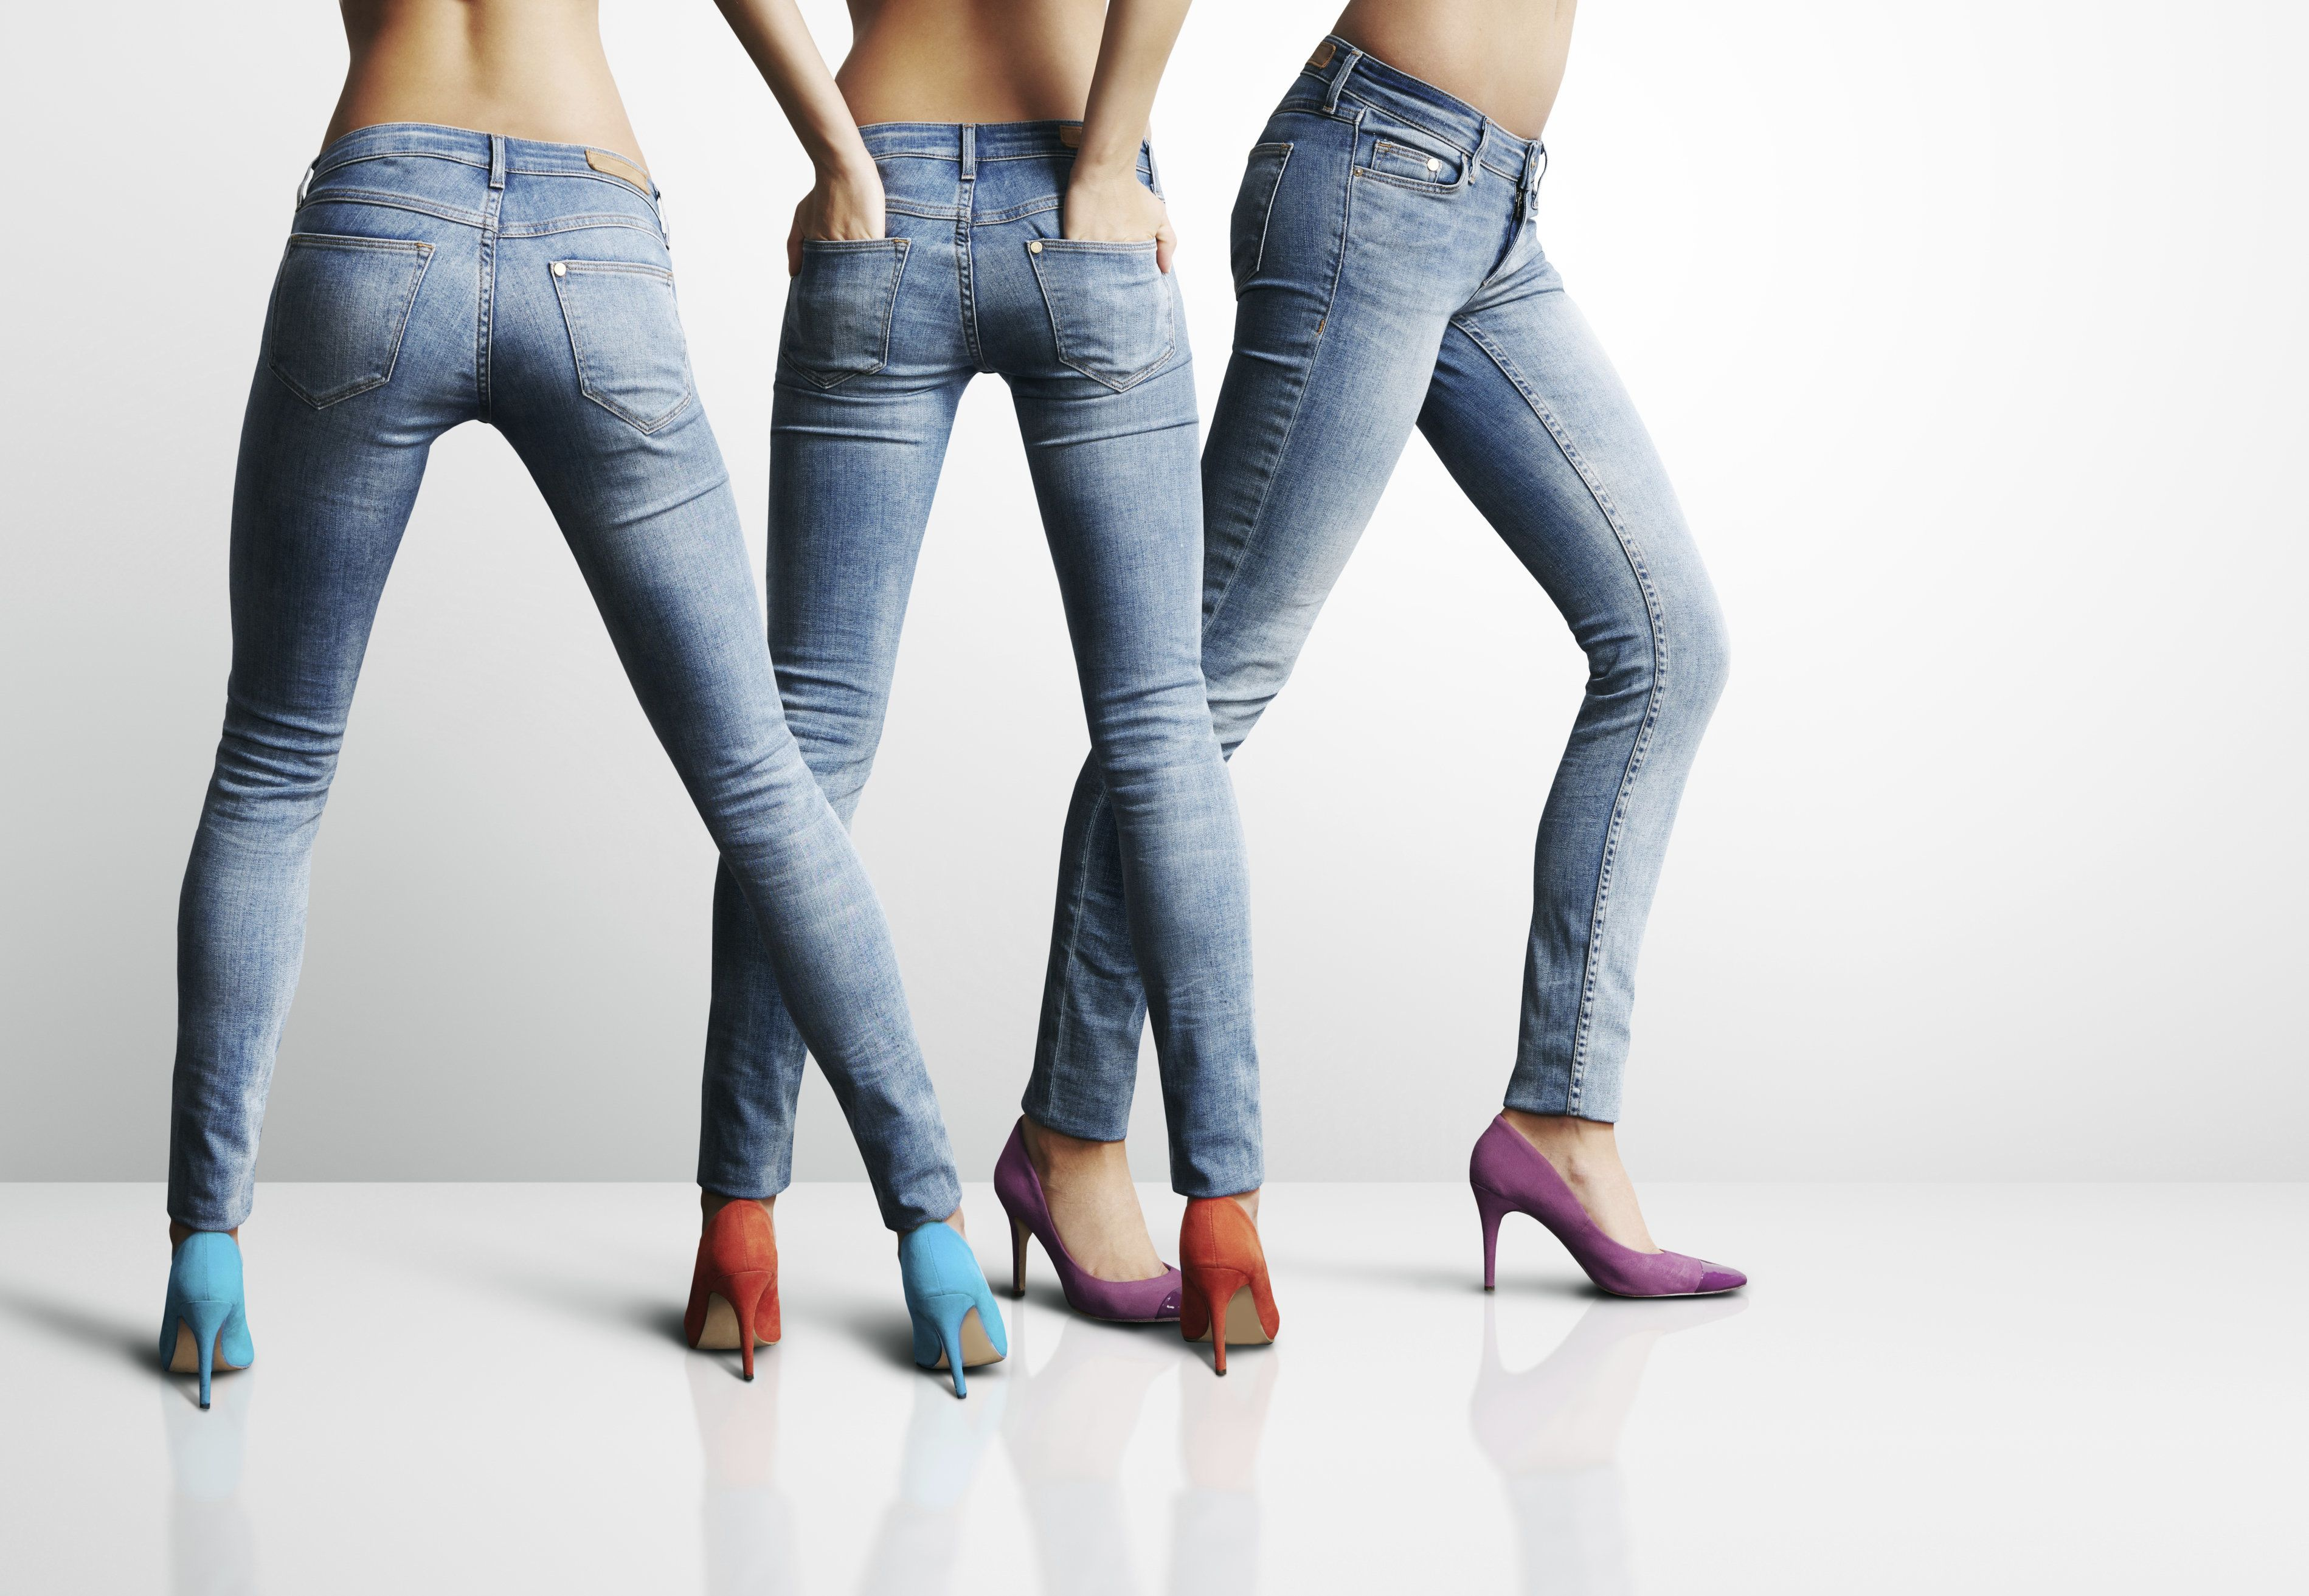 The Age When Women Are Too Old For Long Hair And Skinny Jeans ...